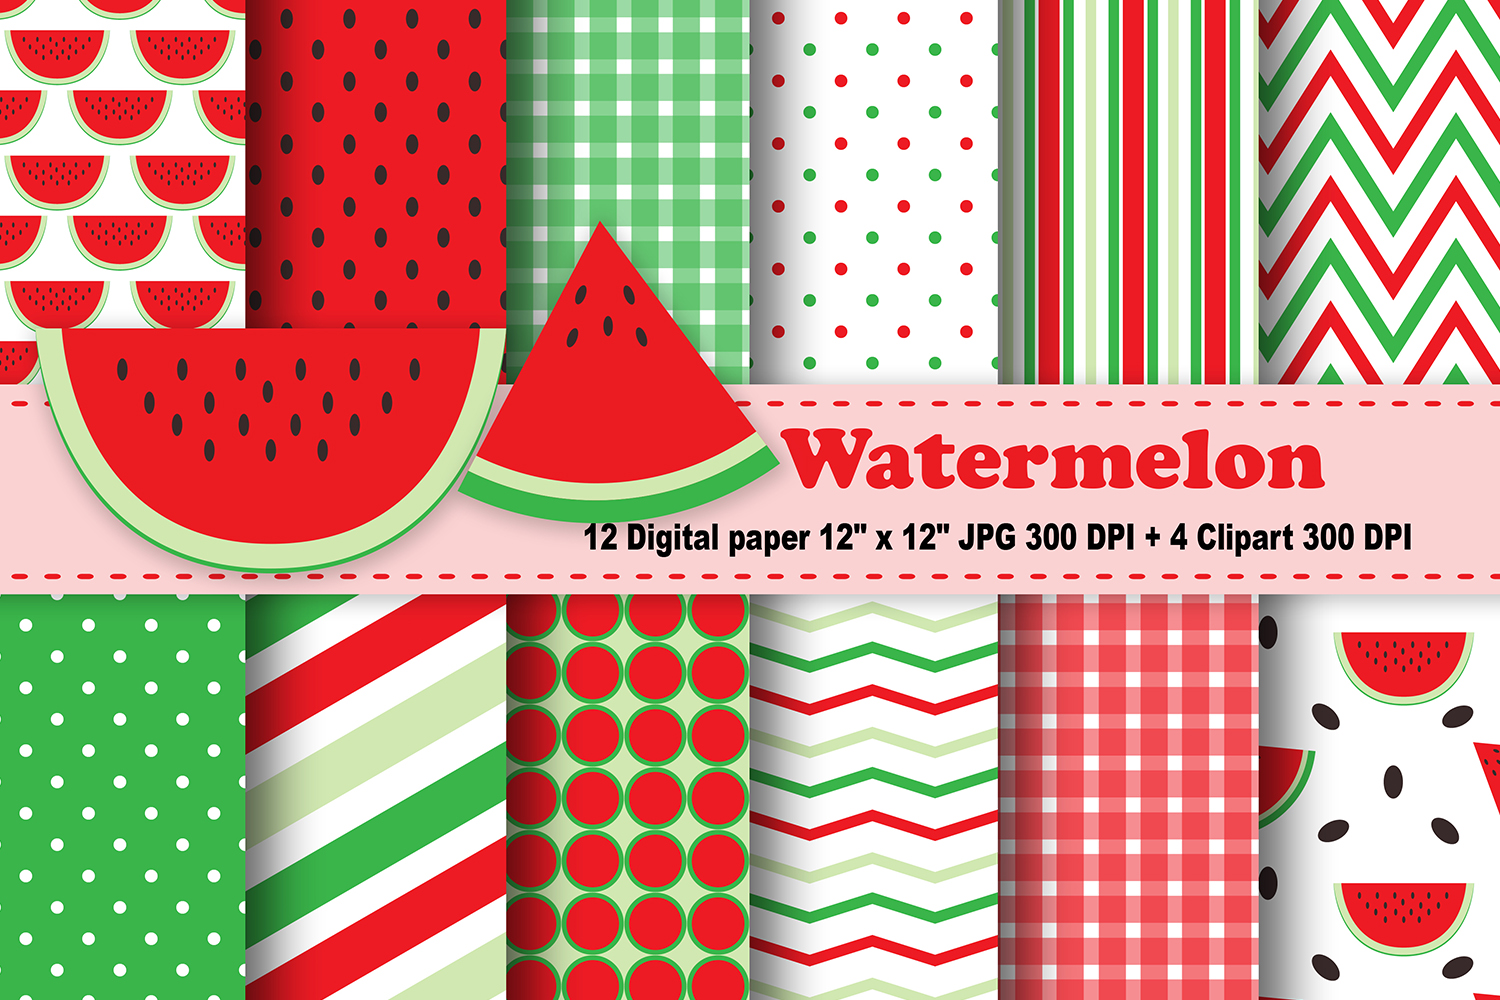 image regarding Watermelon Printable referred to as Watermelon Electronic Paper, Culmination History, Culmination Printable, Sbook Papers, Electronic Sbooking, Watermelon Clipart.